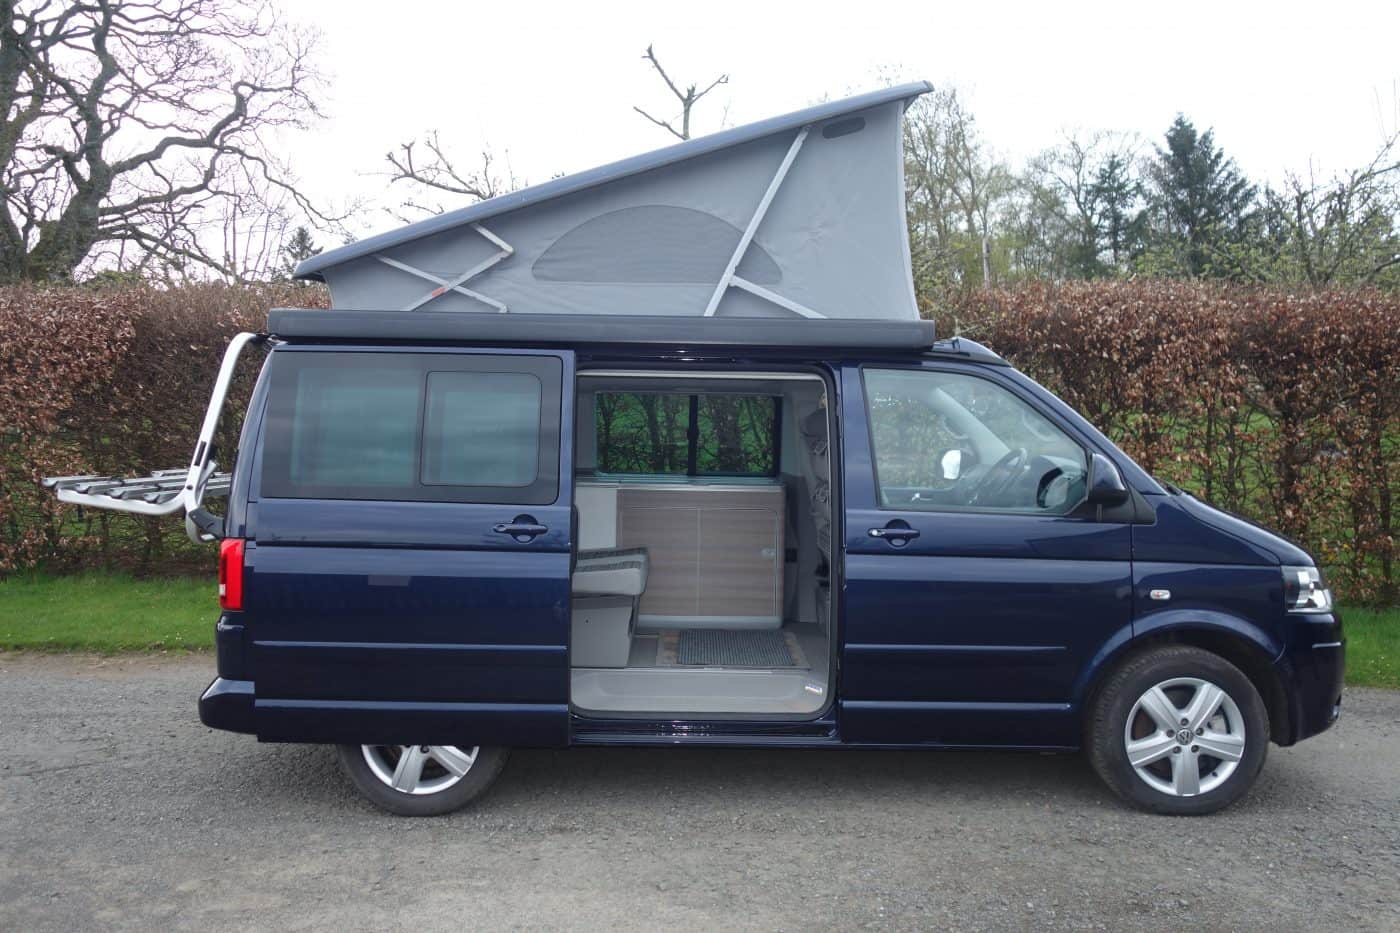 We no longer offer camper van hire